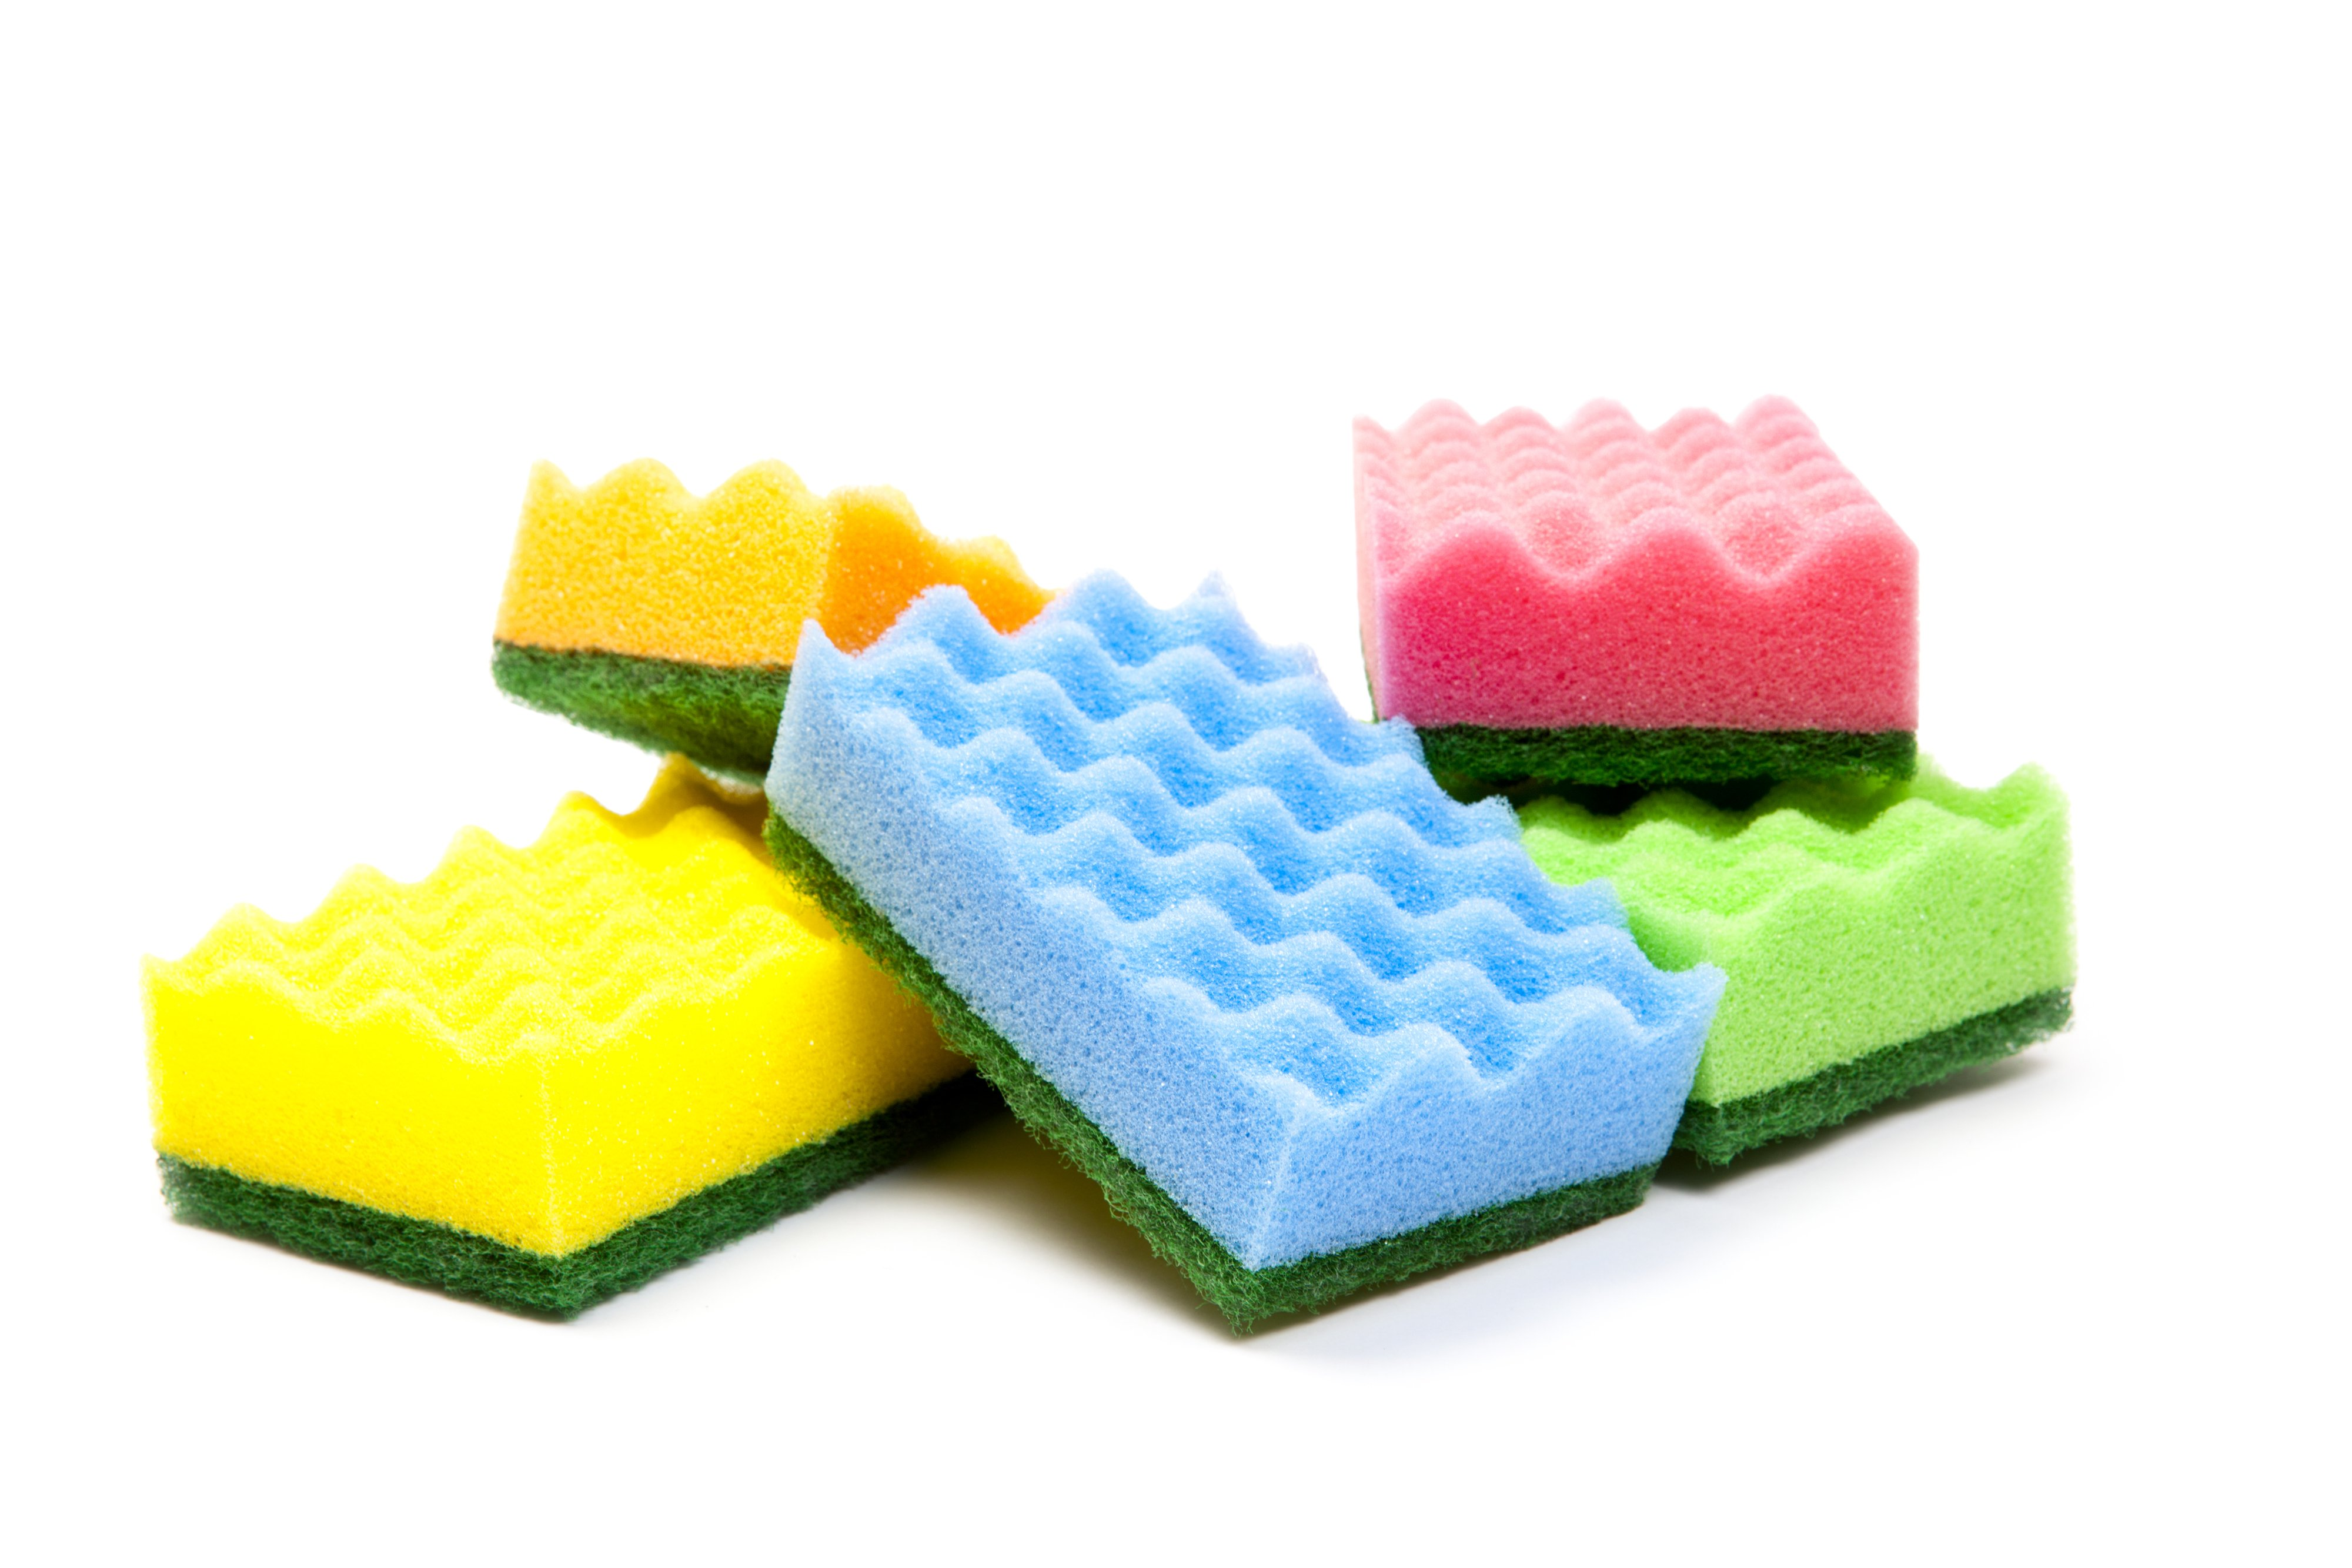 Colorful sponges stacked together | Photo: Shutterstock